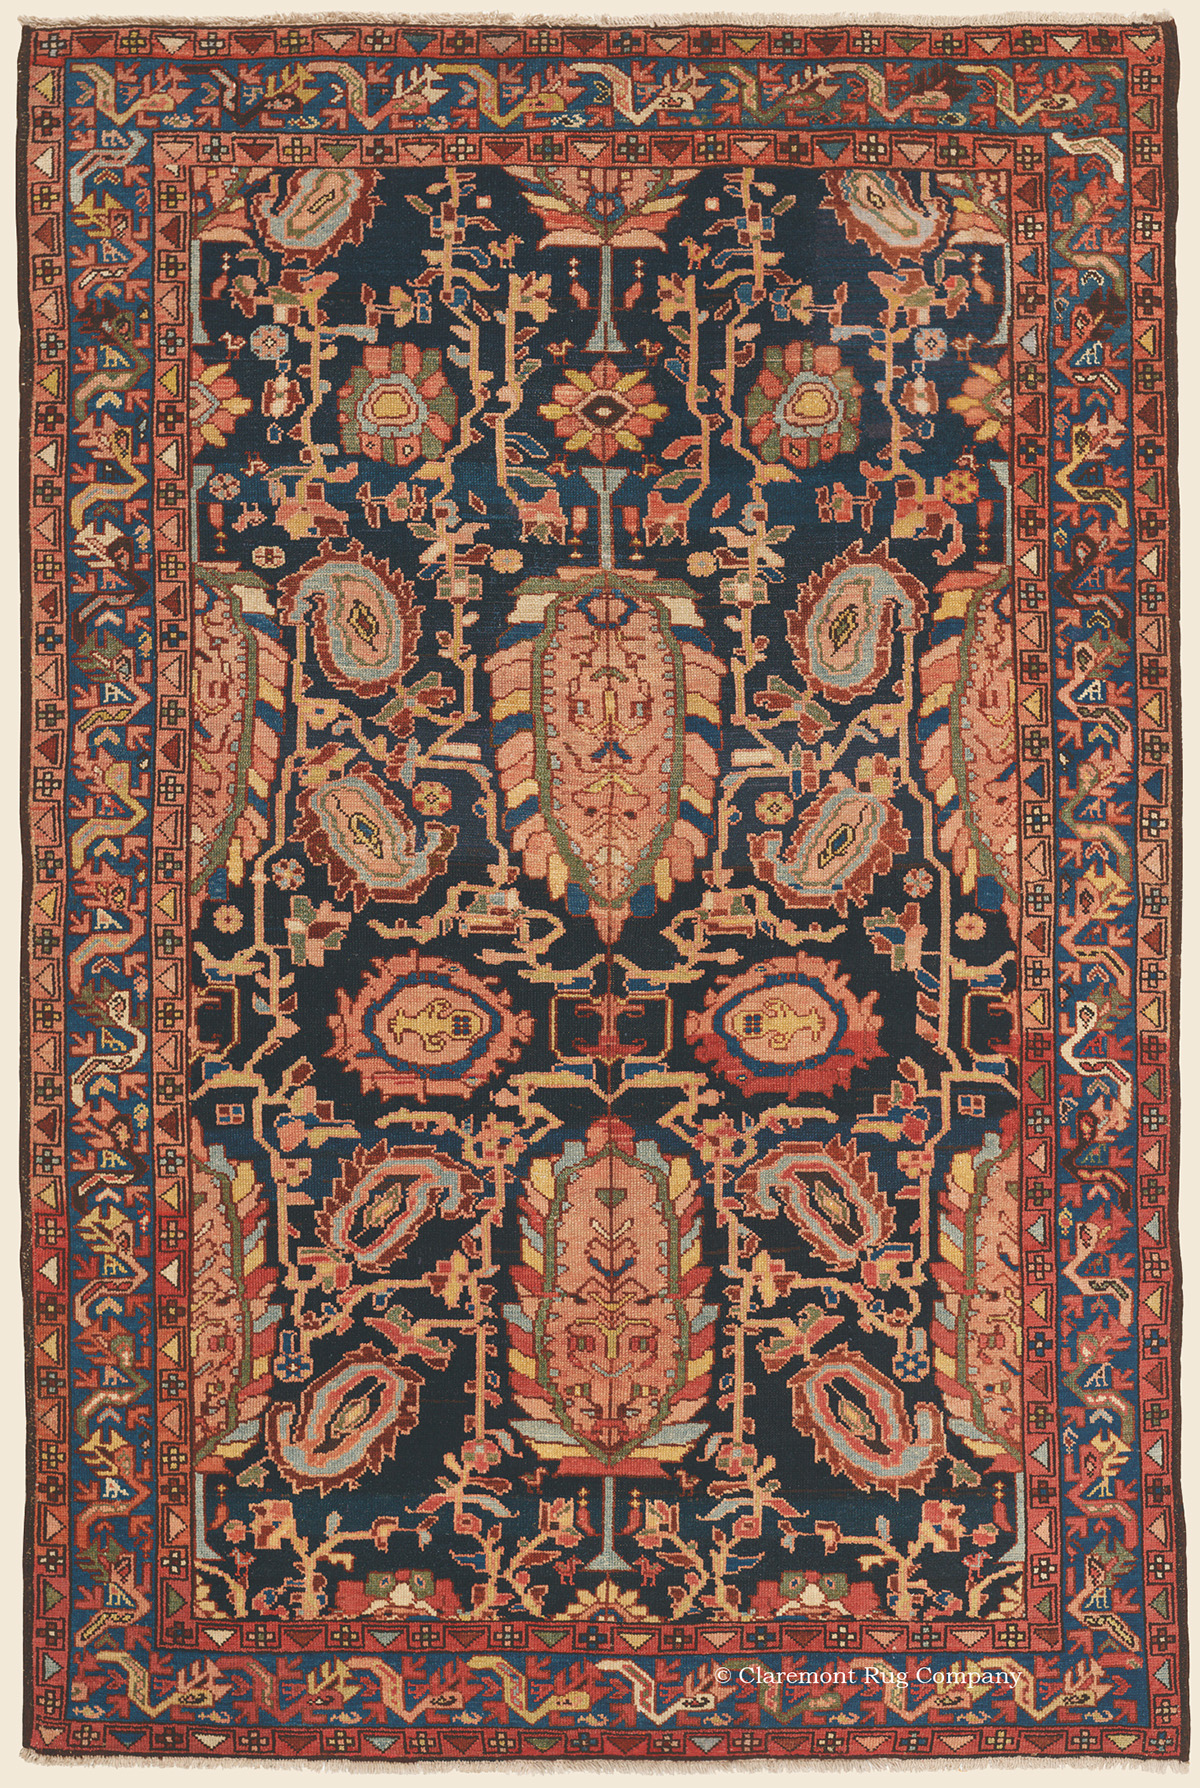 19th Century Malayer Area Size Oriental Rug with mythical dragon border design and floral theme